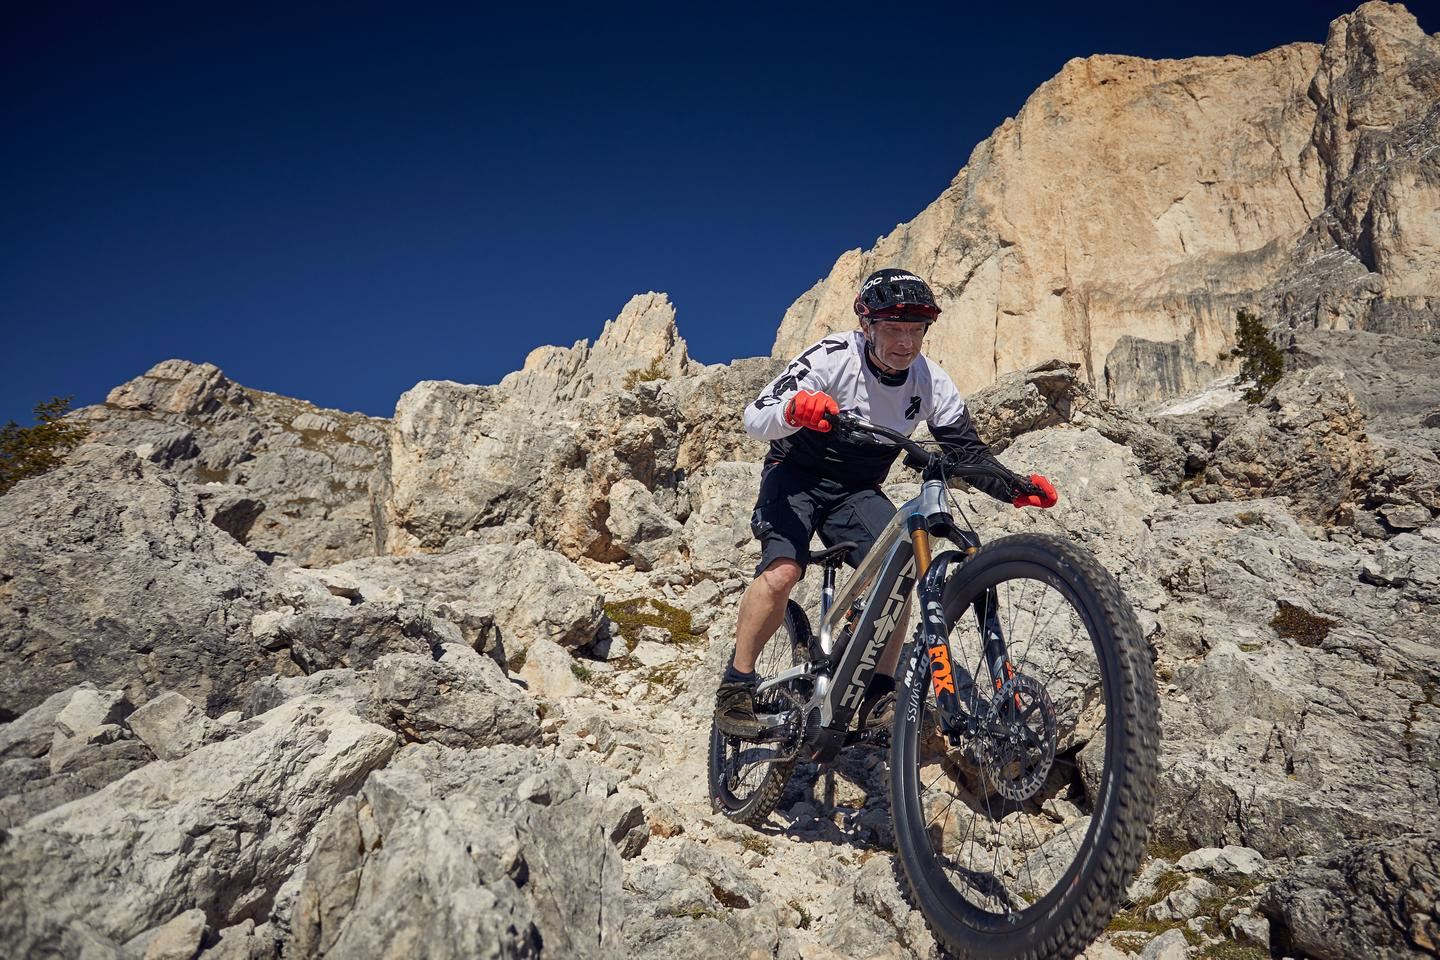 The CNC eFanes is designed for enduro riding